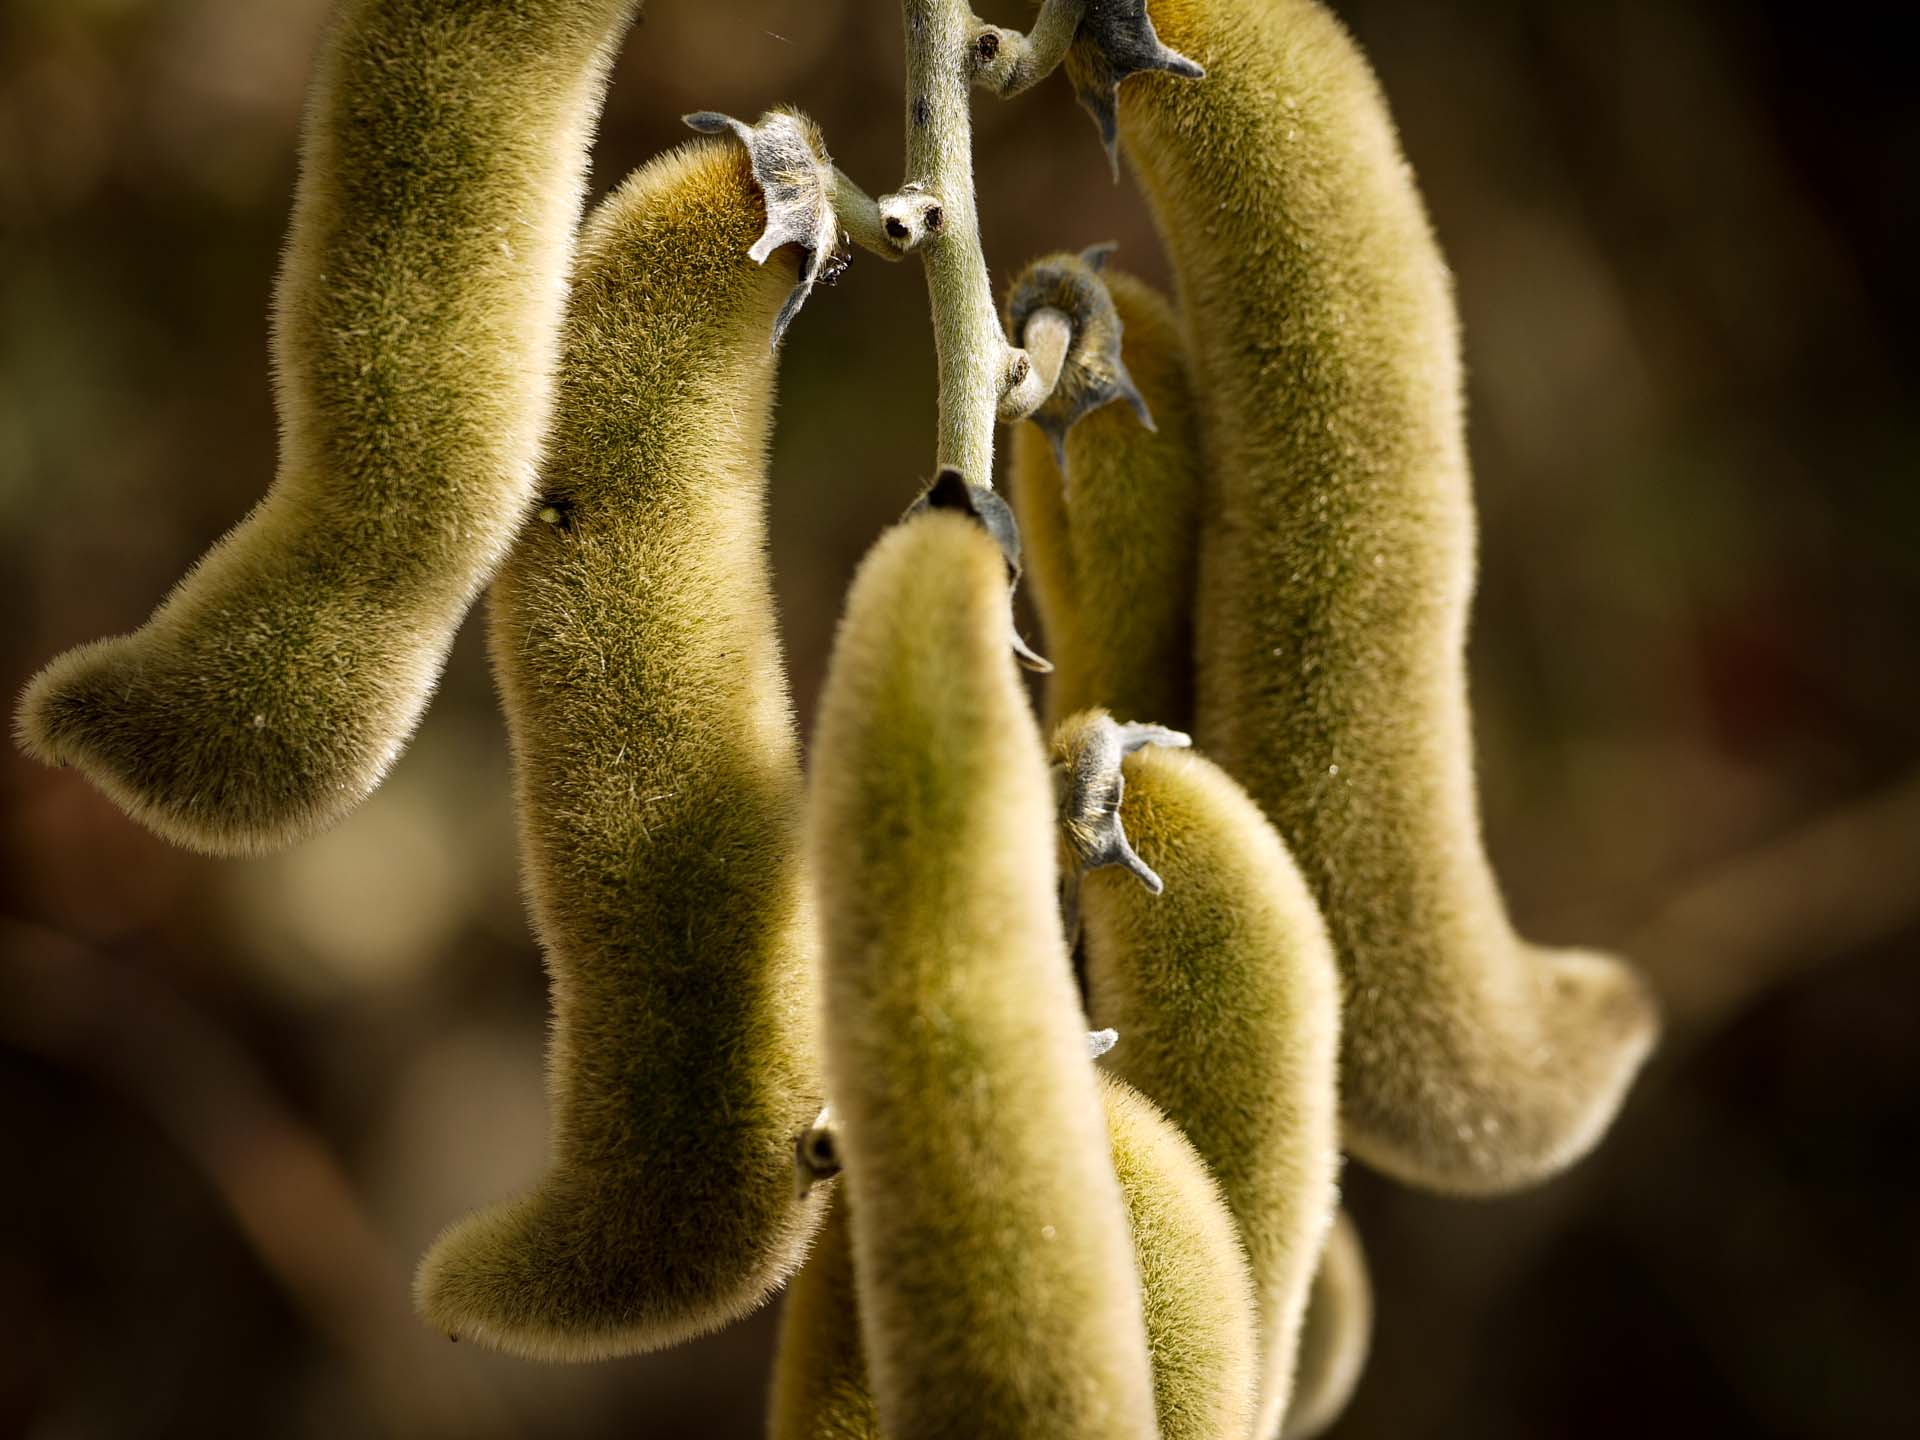 mucuna-pruriens-benefits-maximum-testosterone-and-growth-hormone-flowers-beans